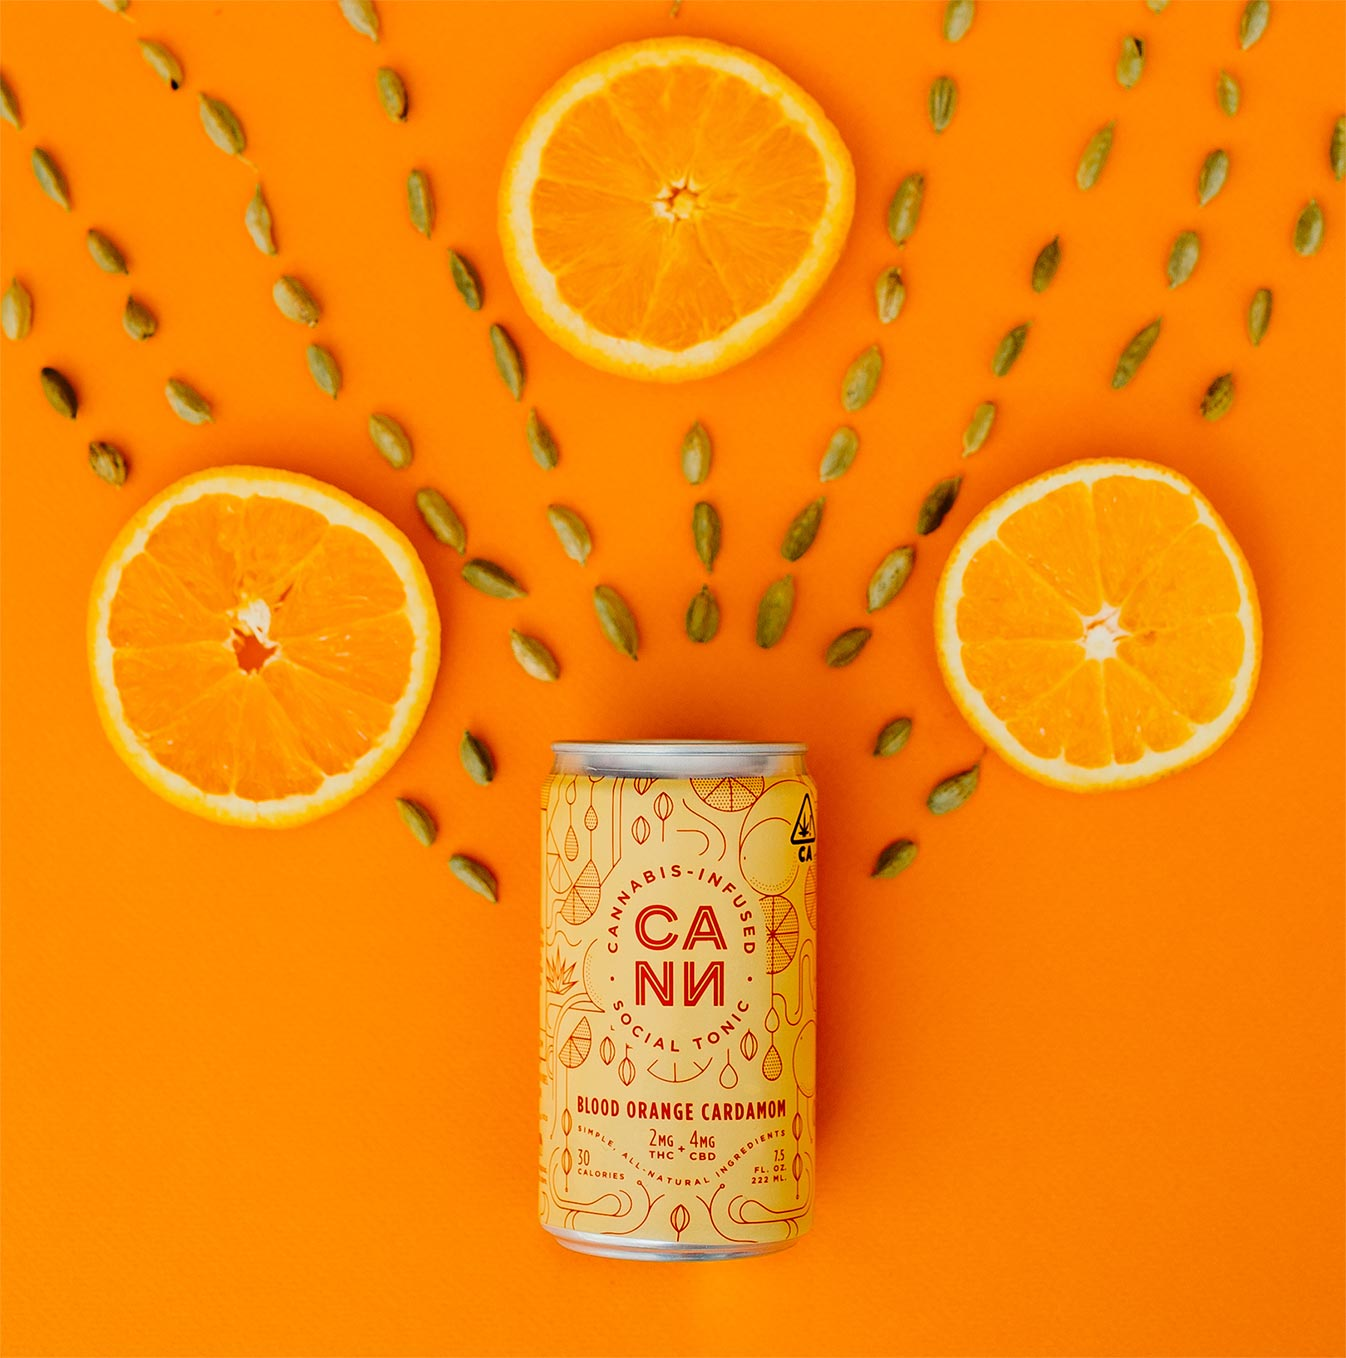 cann social tonics thc & cbd drink content creation by Meraki Narrative: A Branding, Design, and Creative Agency